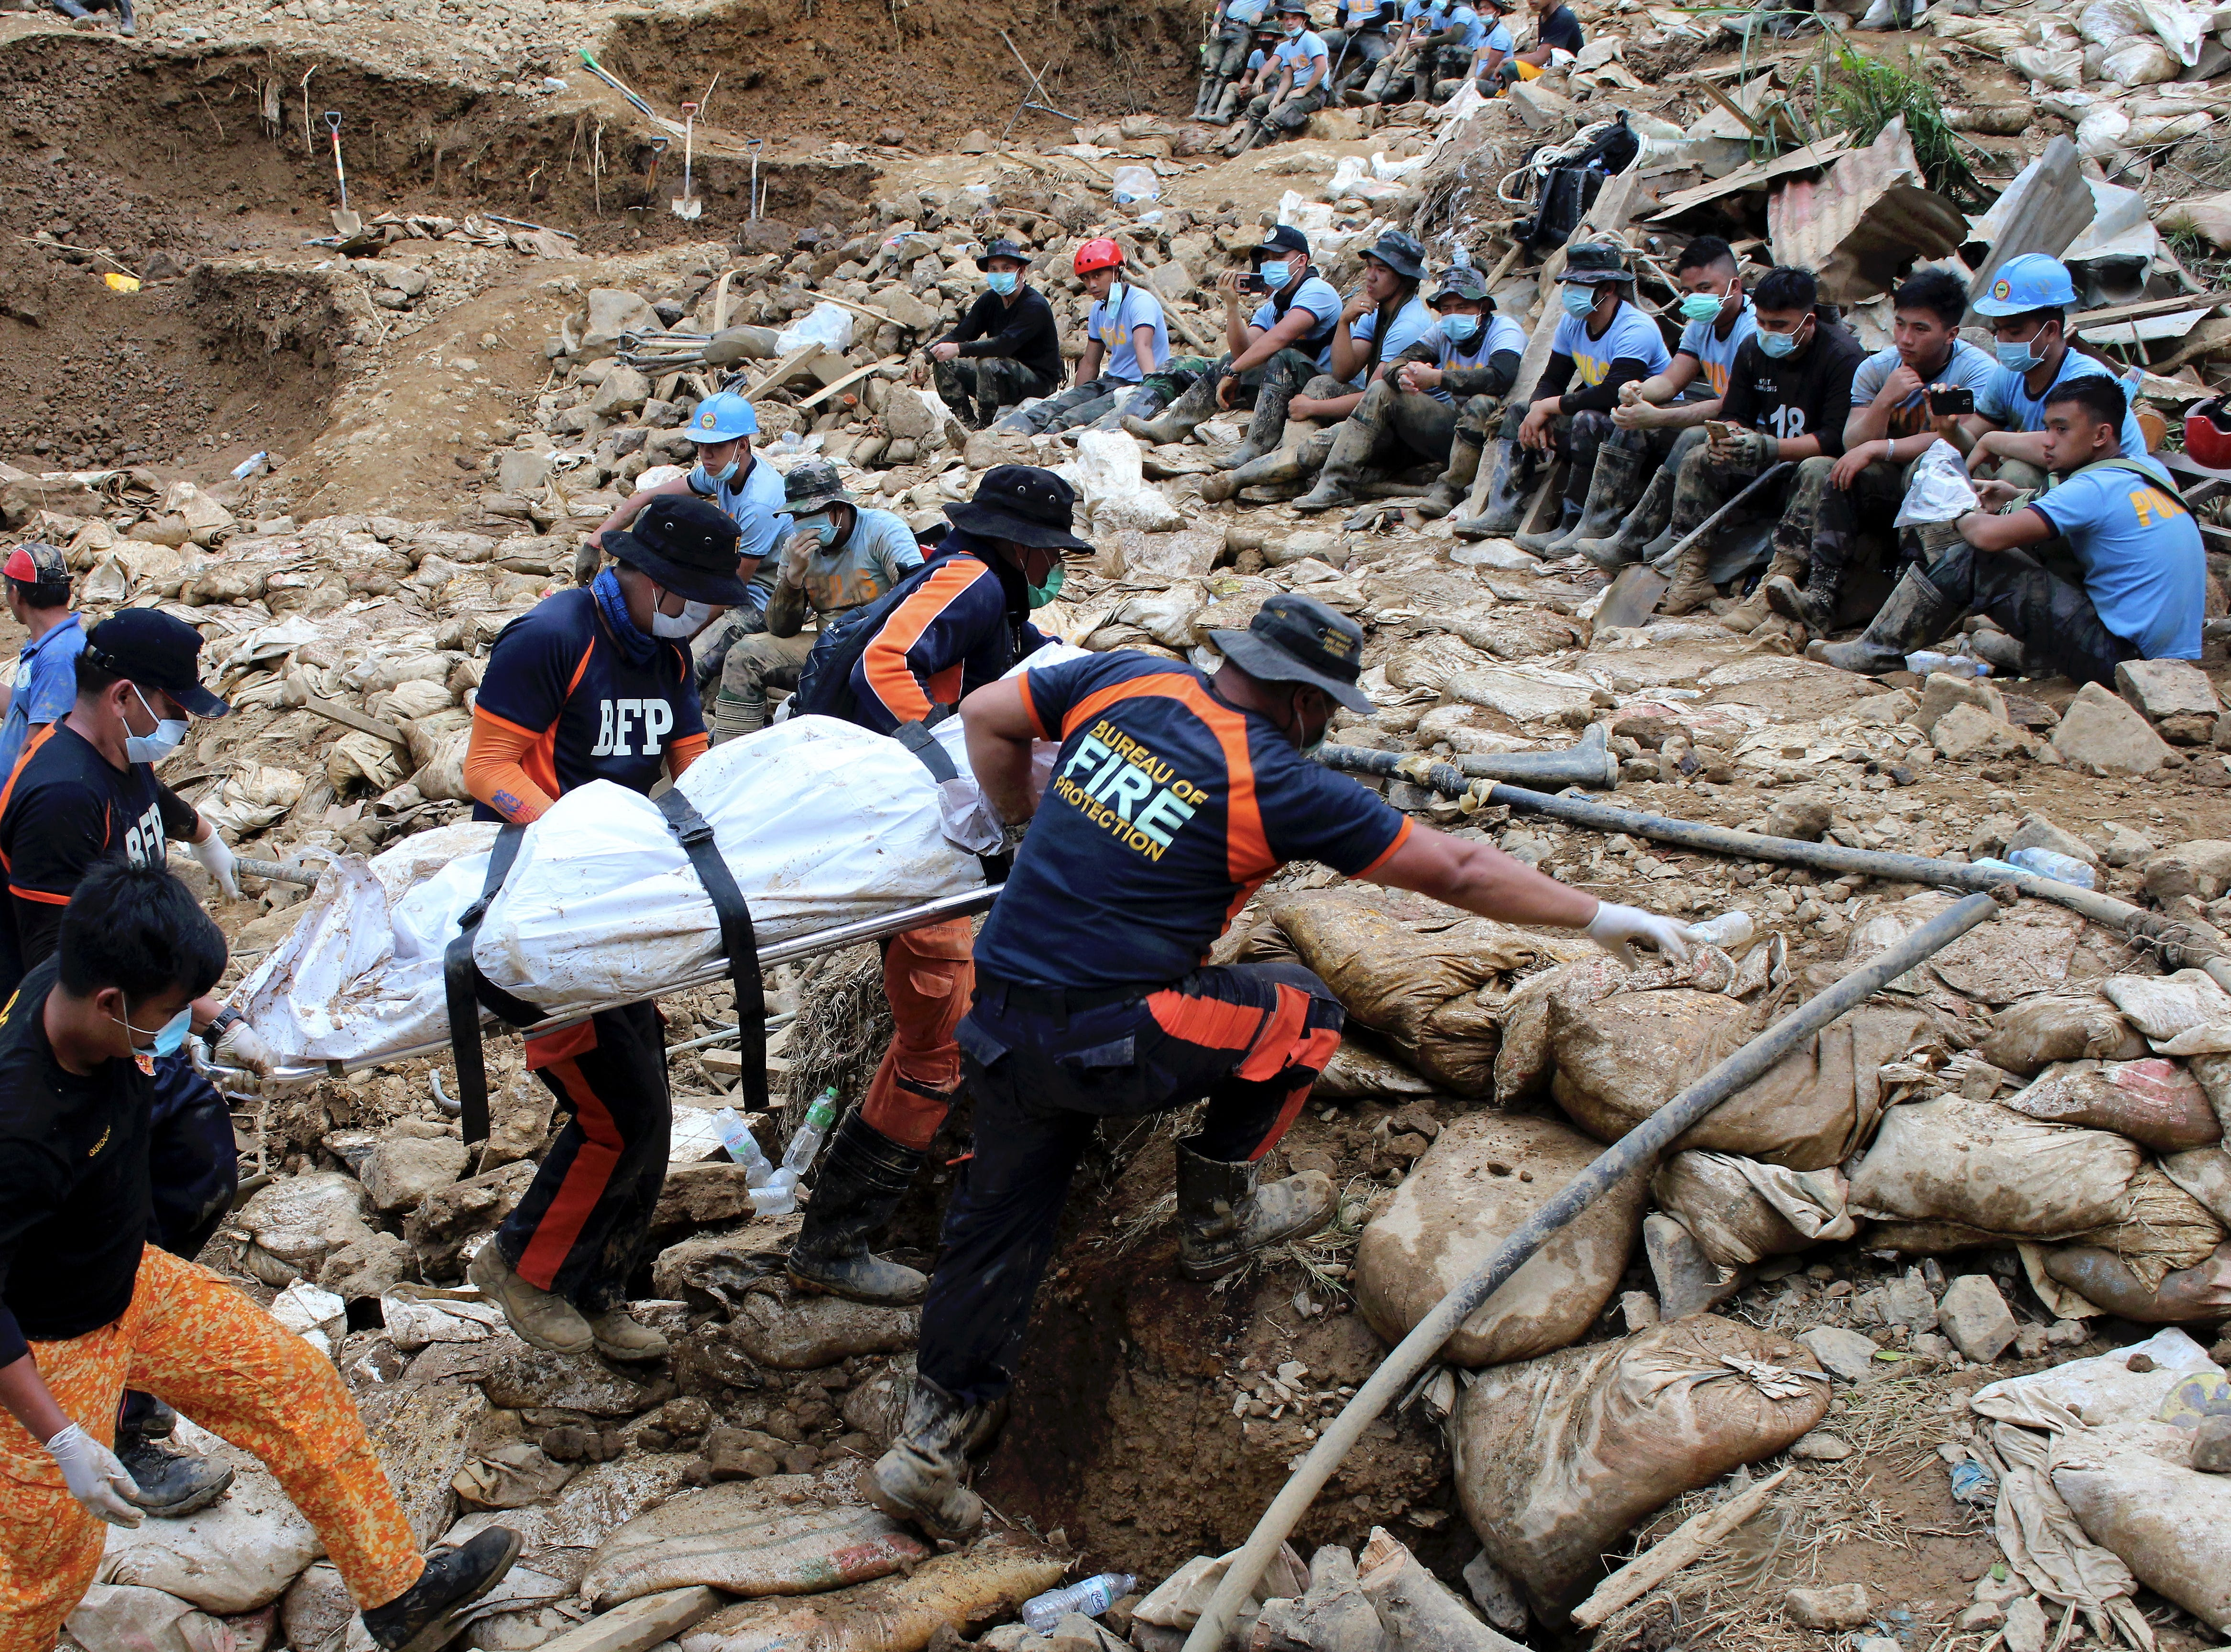 Rescuers carry a body during rescue and retrieval operation for landslide victims caused by Typhoon Mangkhut in Ucab village, Itogon town, Benguet Province, Philippines on Sept. 19, 2018 . The number of people killed in the Philippines by typhoon Mangkhut rose to 81 and dozens remain missing, according to provisional data gathered as emergency teams access areas struck by the storm.